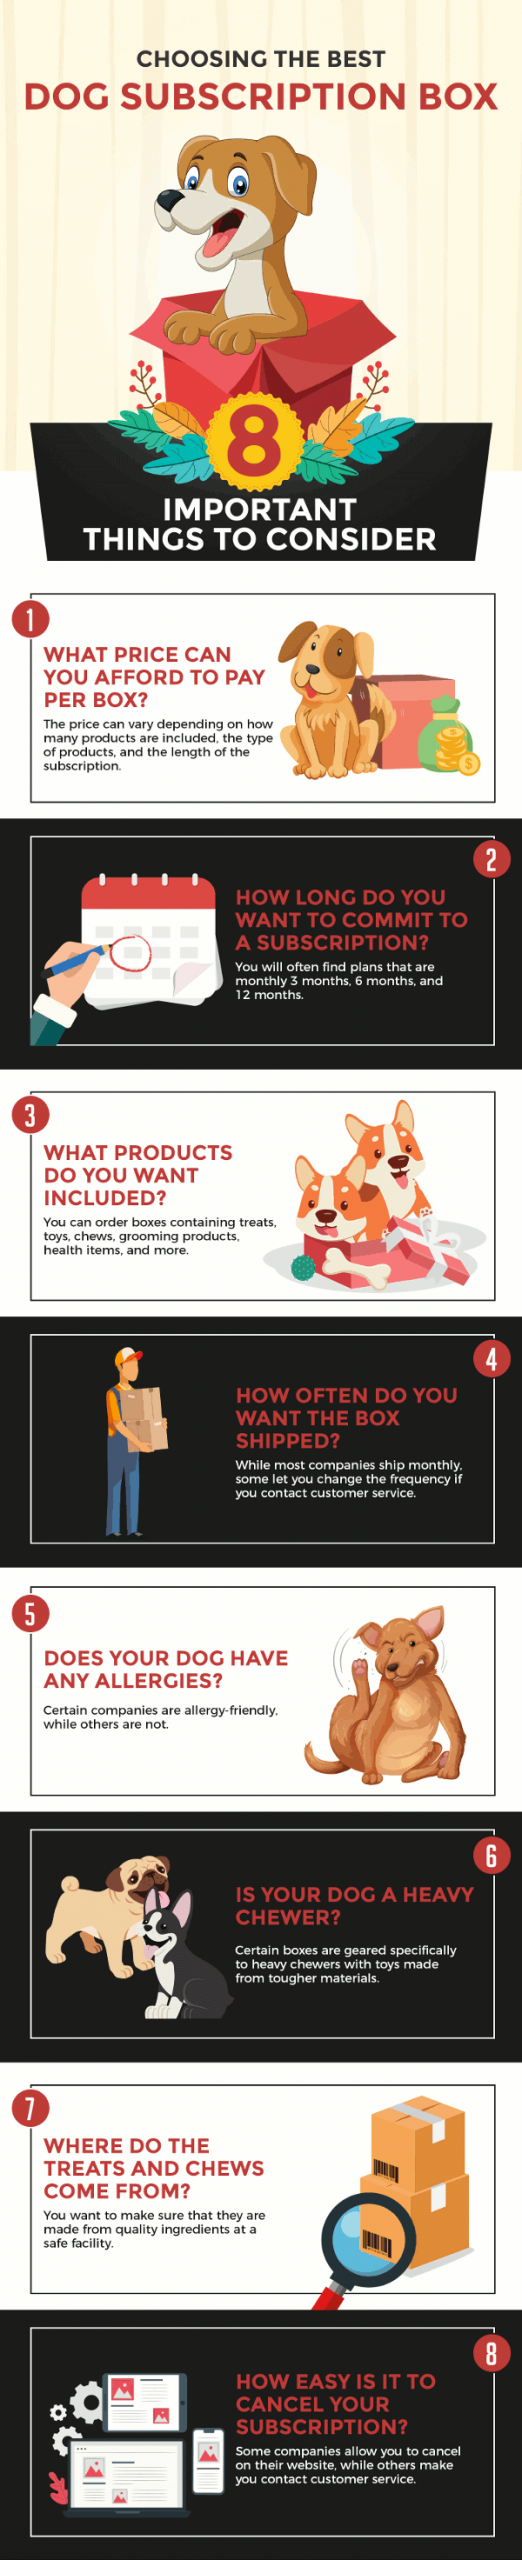 Choosing the Best Dog Subscription Box #infographic